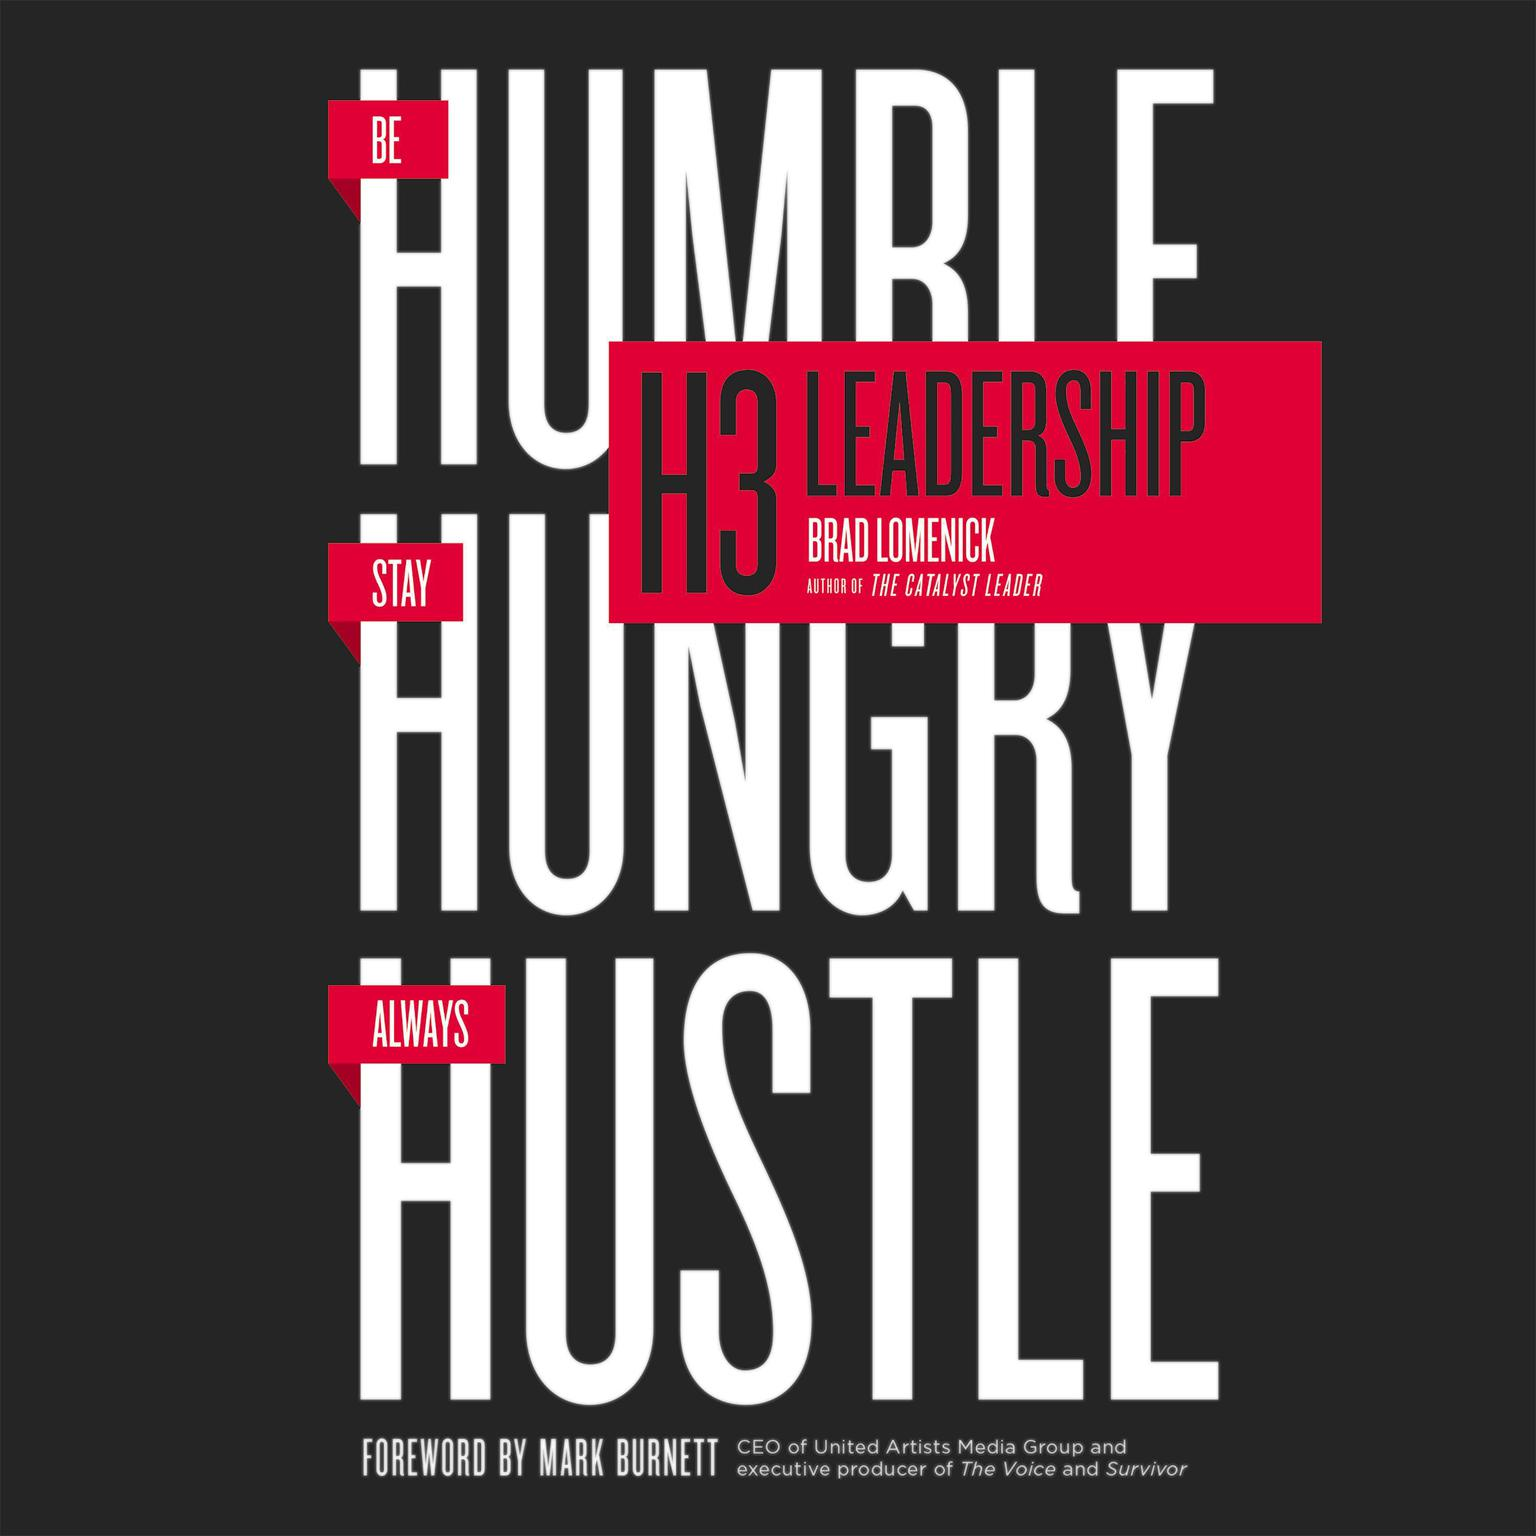 Printable H3 Leadership: Stay Hungry. Be Humble. Always Hustle. Audiobook Cover Art